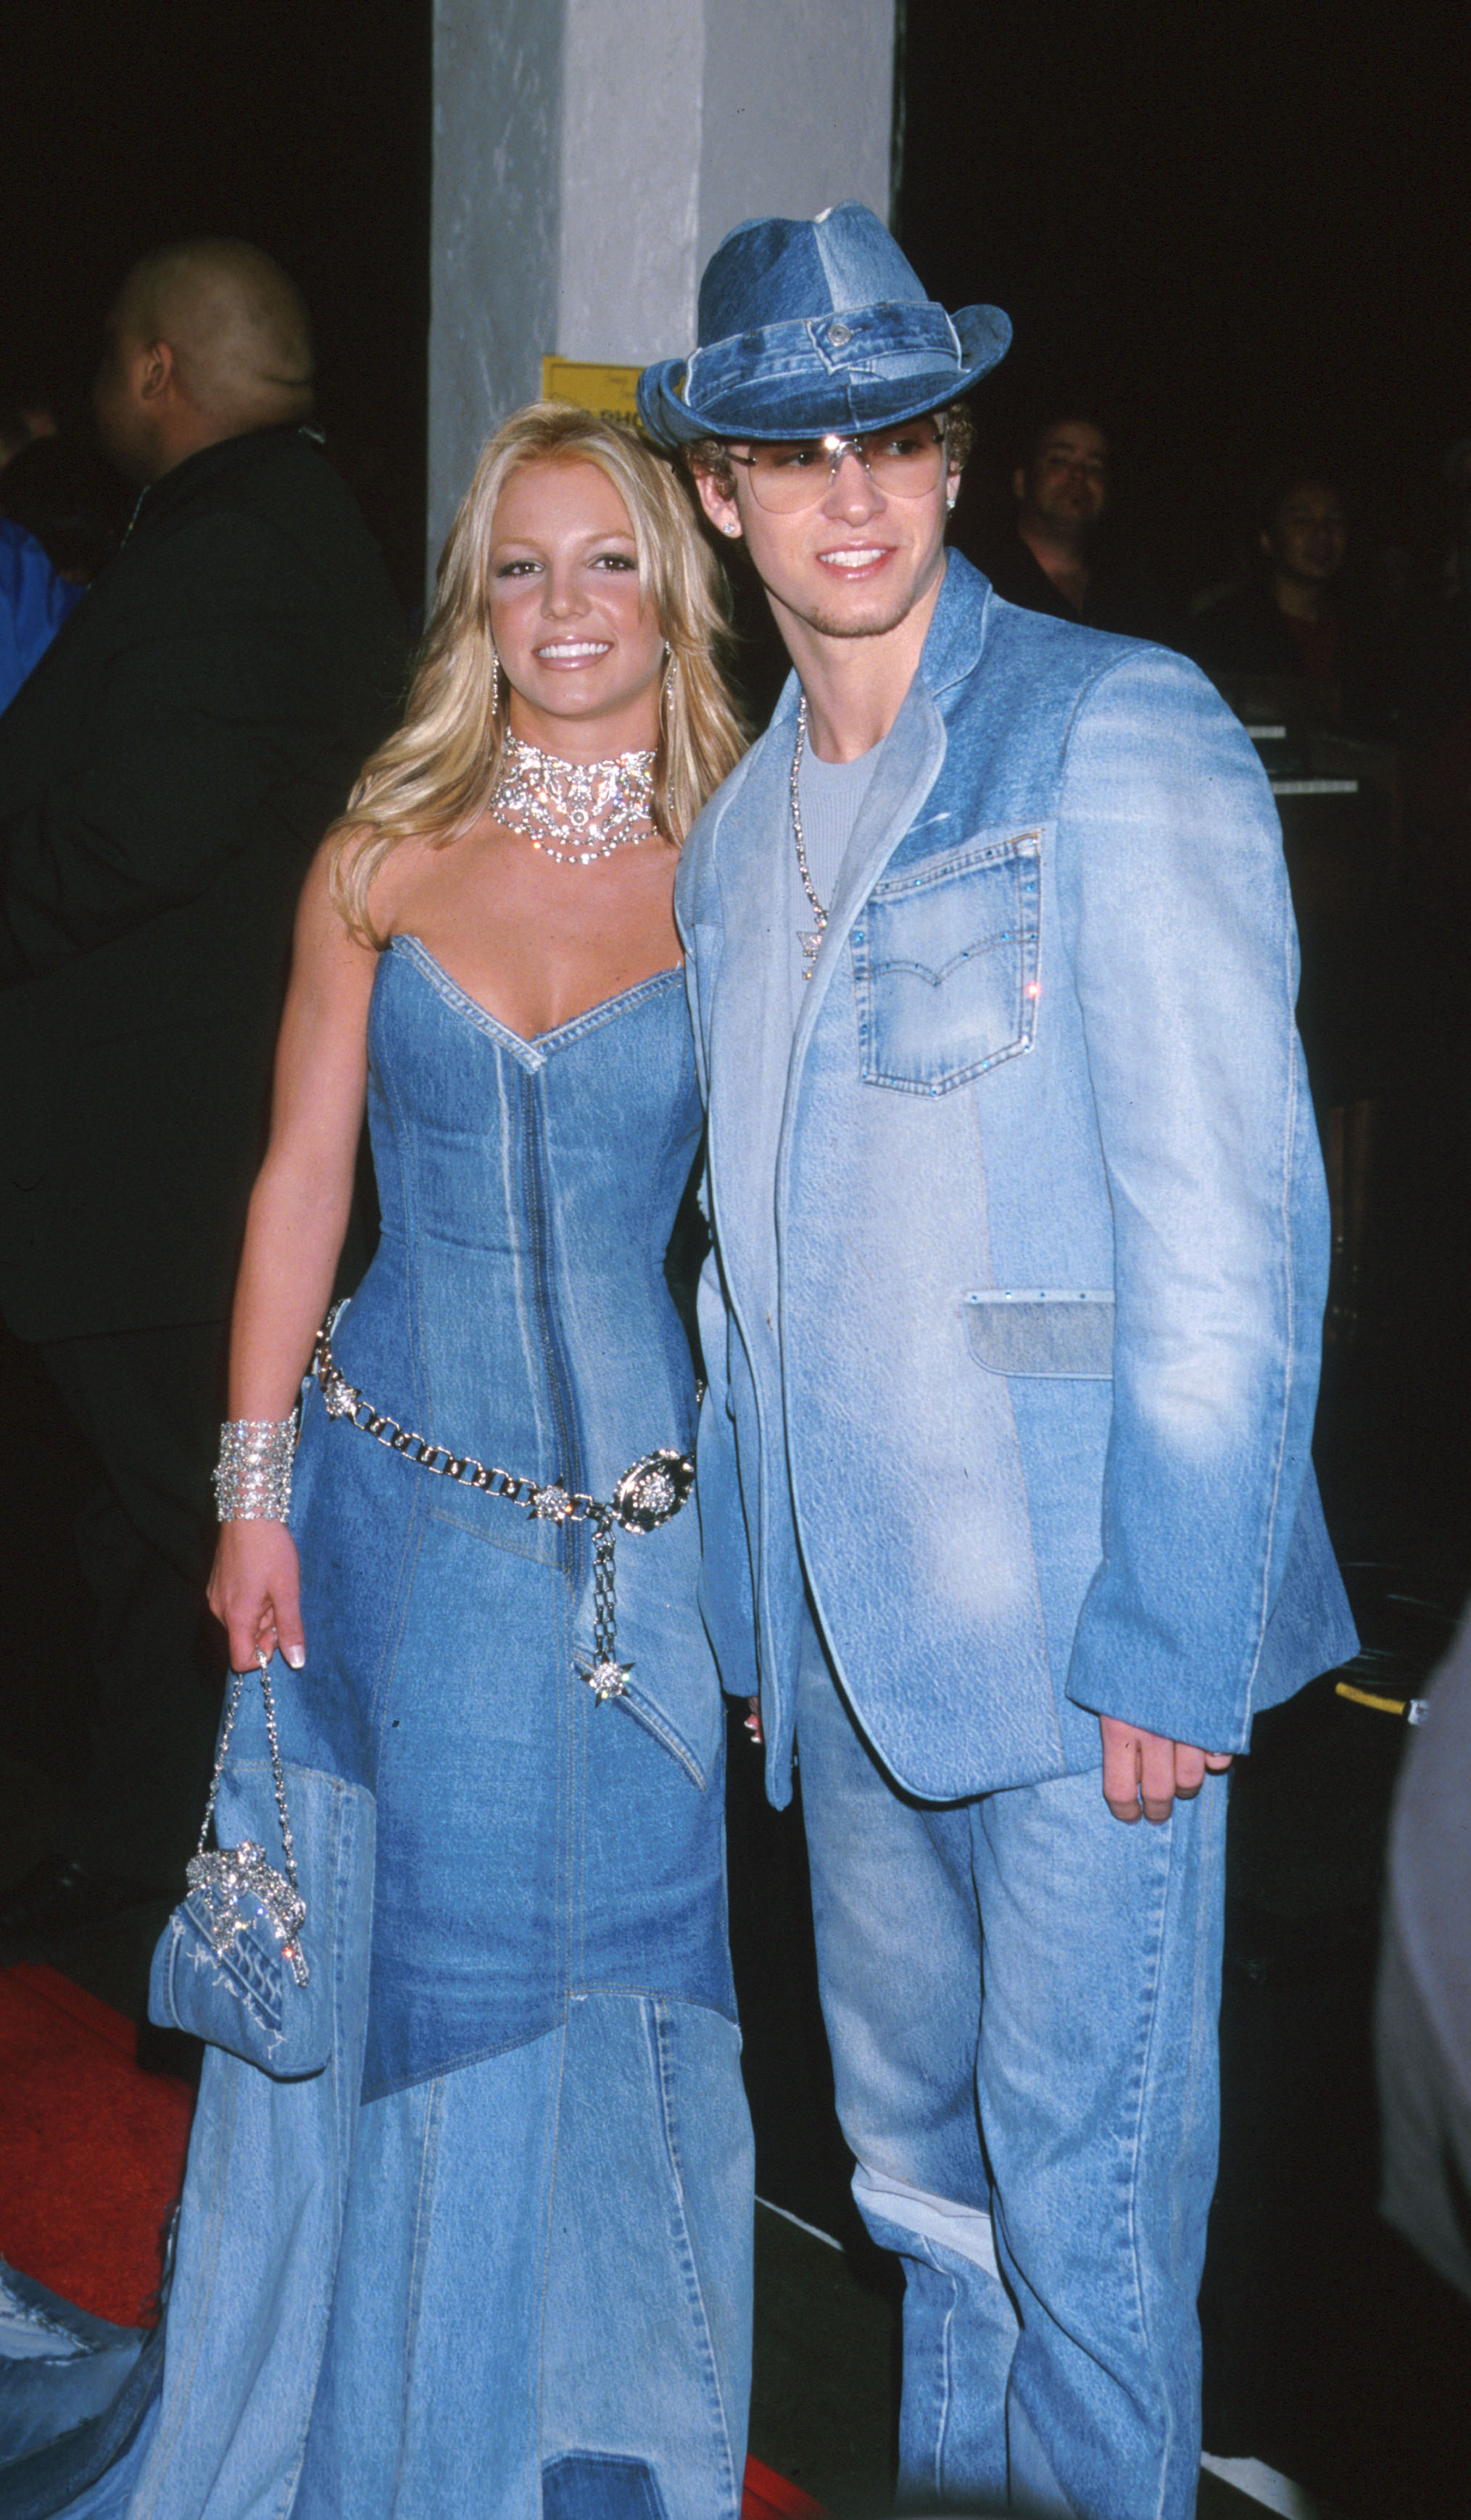 Justin Timberlake and Britney Spears double denim